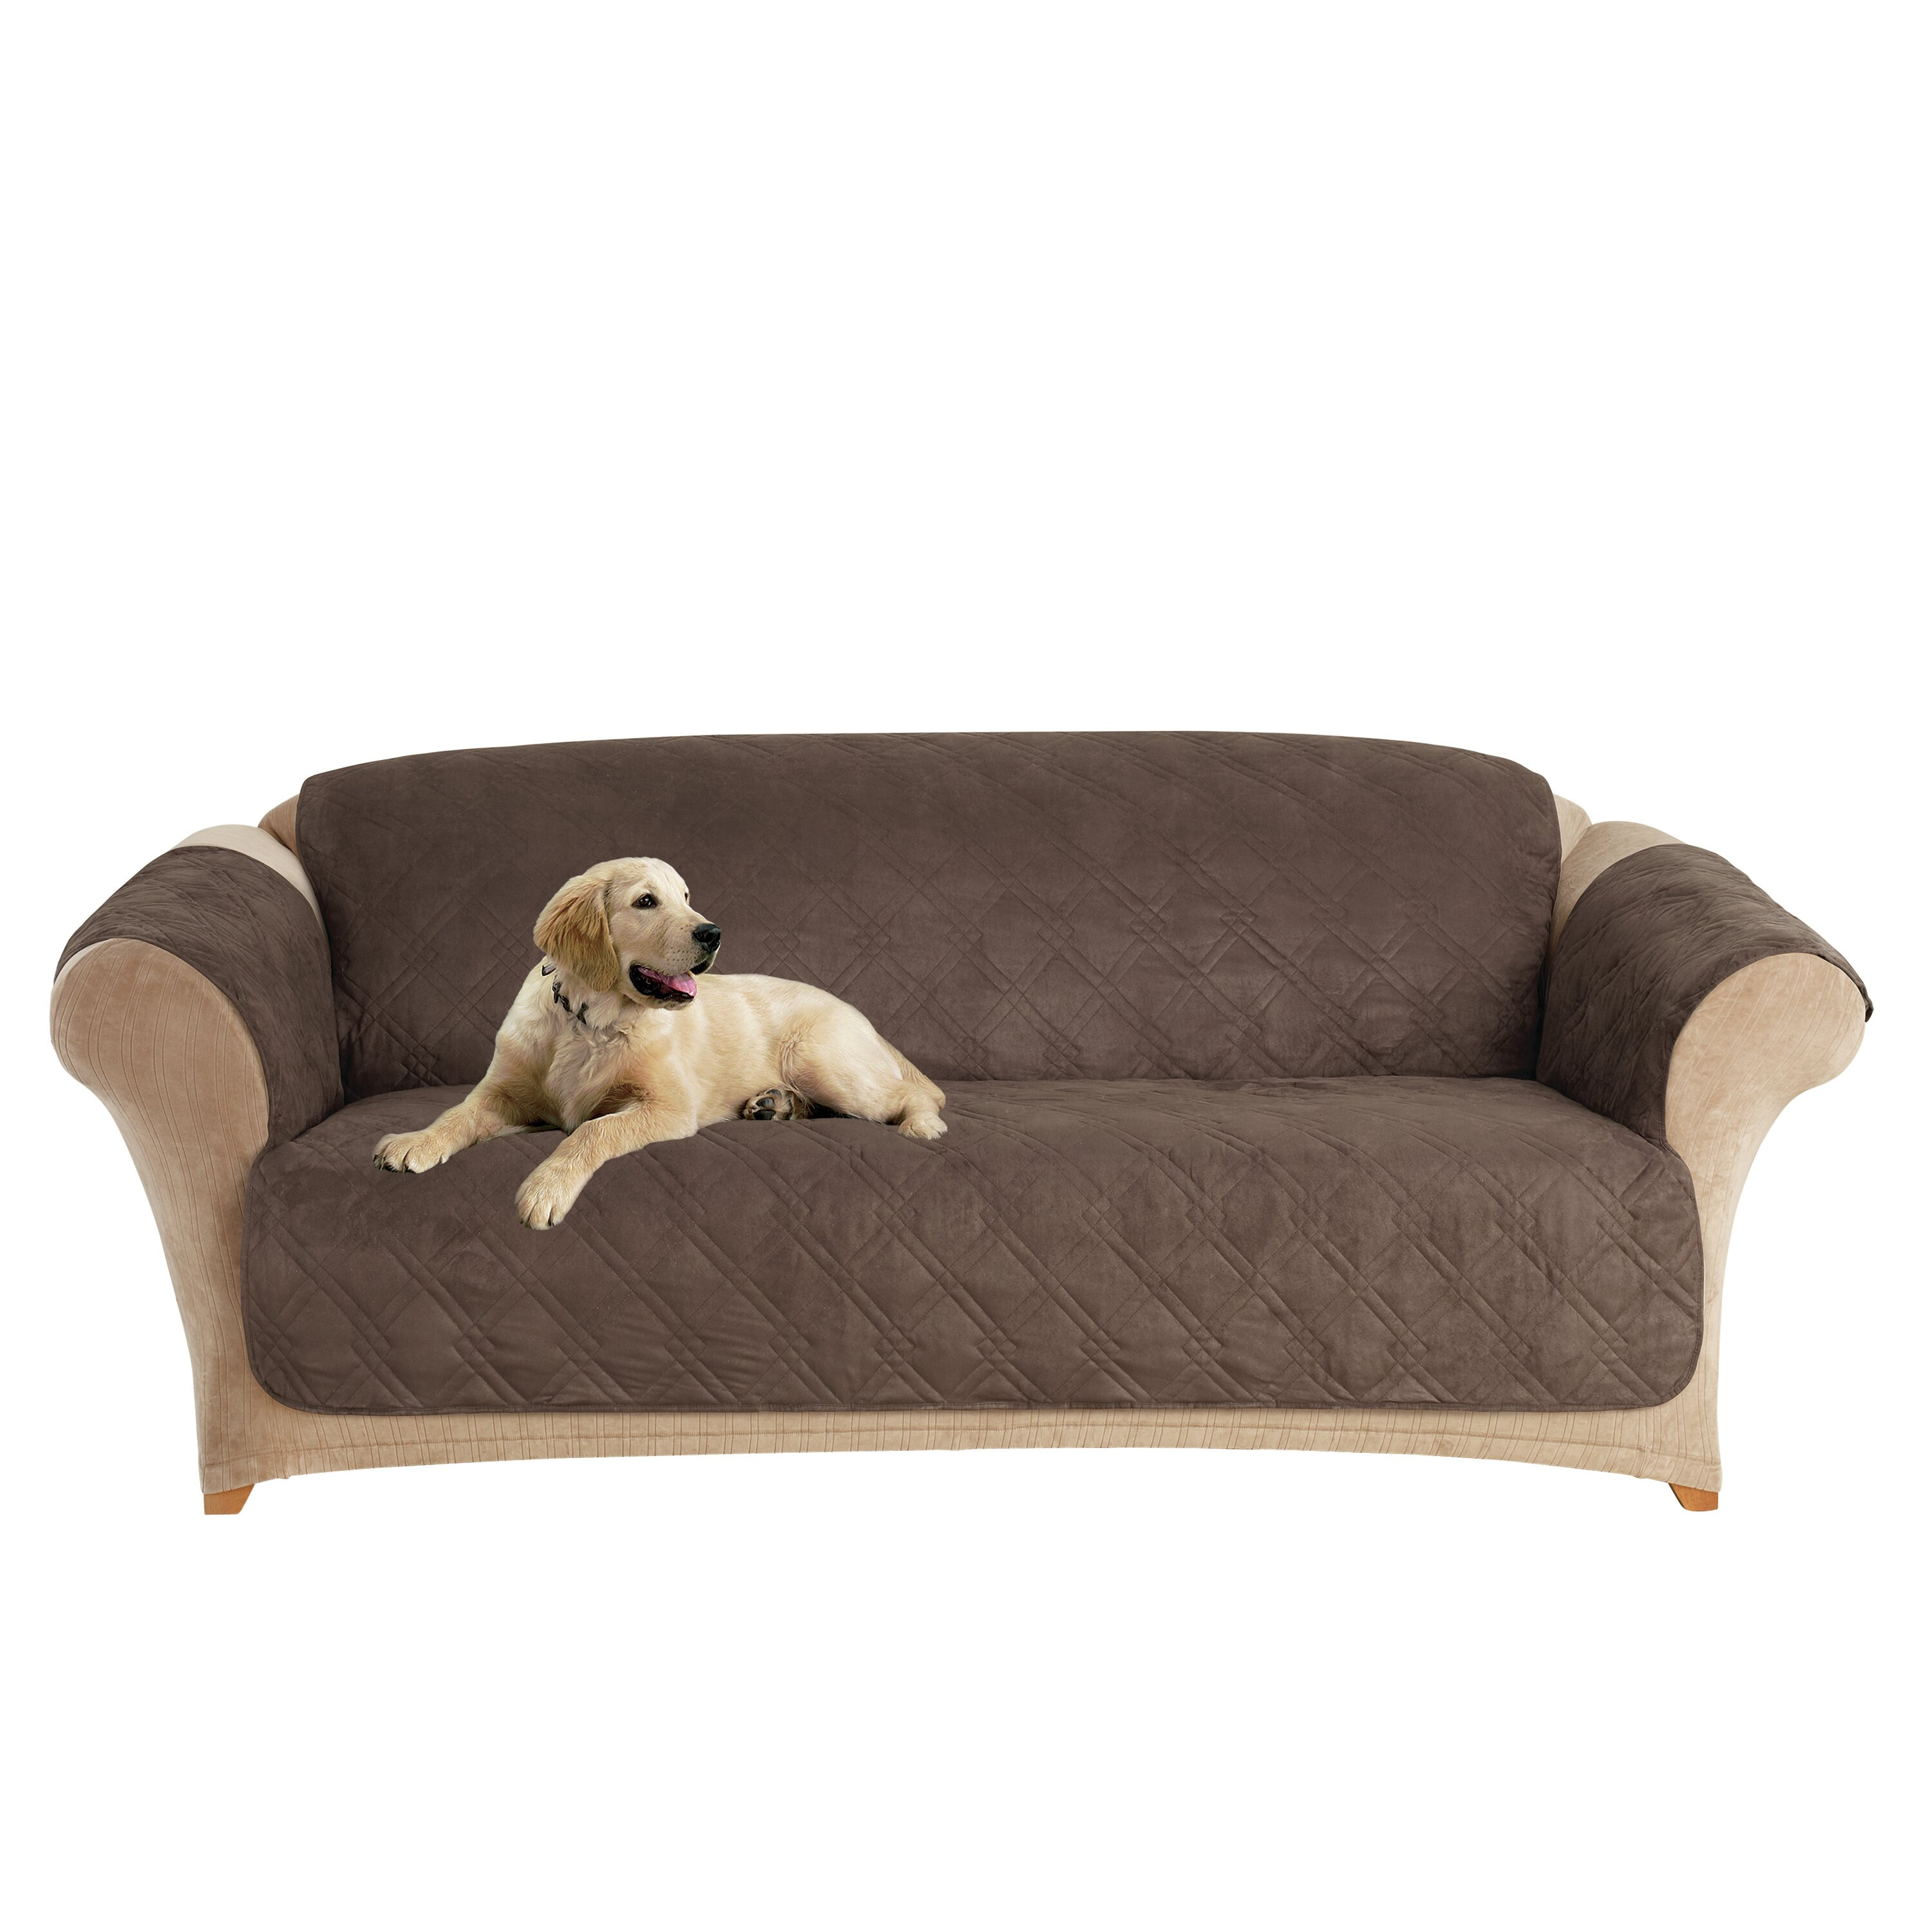 3 Seater Sofa Covers Canada Velcromag